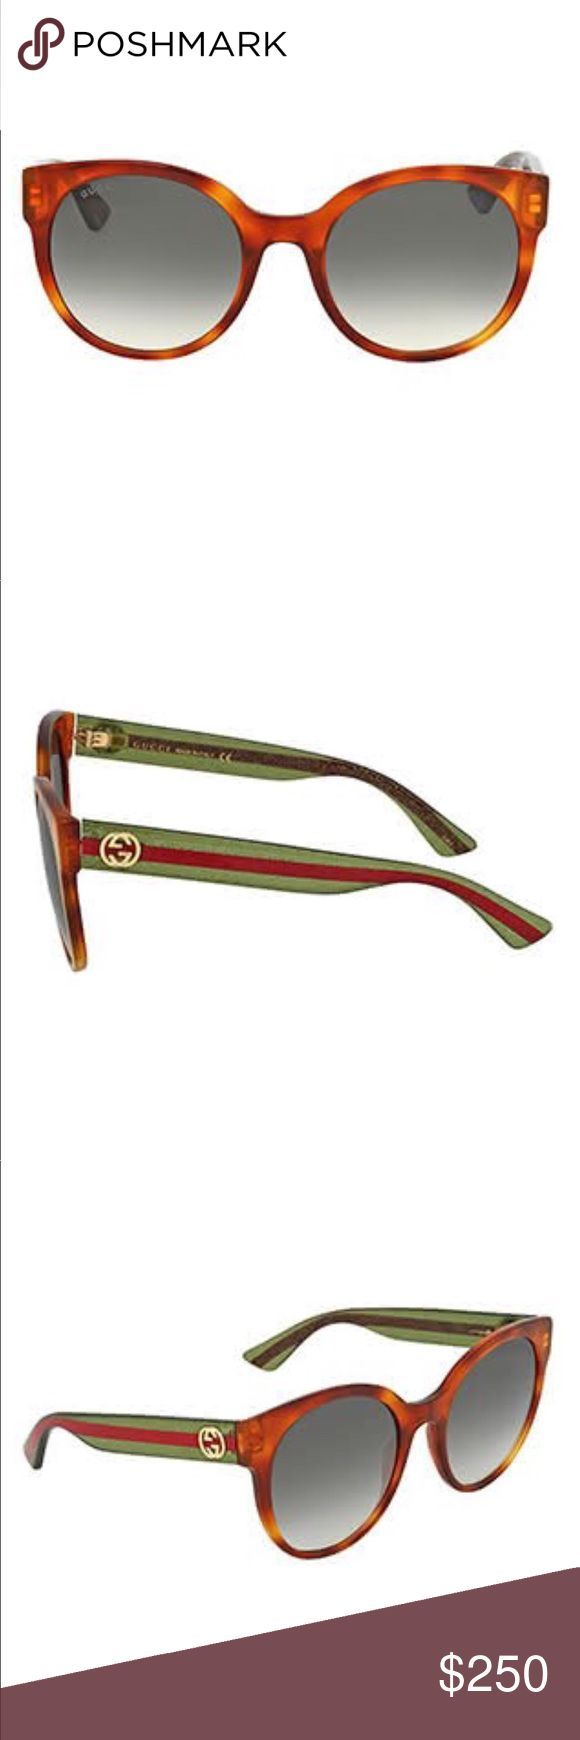 Gucci GG0035S 003 Women's Sunglasses Brown Havana Gucci GG0035S 003 Women's Sunglasses In Brown Havana  SKU:USA-GG_0035S_003 Quick overview:  • Gender: Women • Year: 2017 • Frame Color: Brown Havana • Lens Color: Green Gradient • Frame Shape: Oval • Frame Style: Full Rim • Frame Material: Acetate • Lens Material: Nylon Gucci Accessories Sunglasses